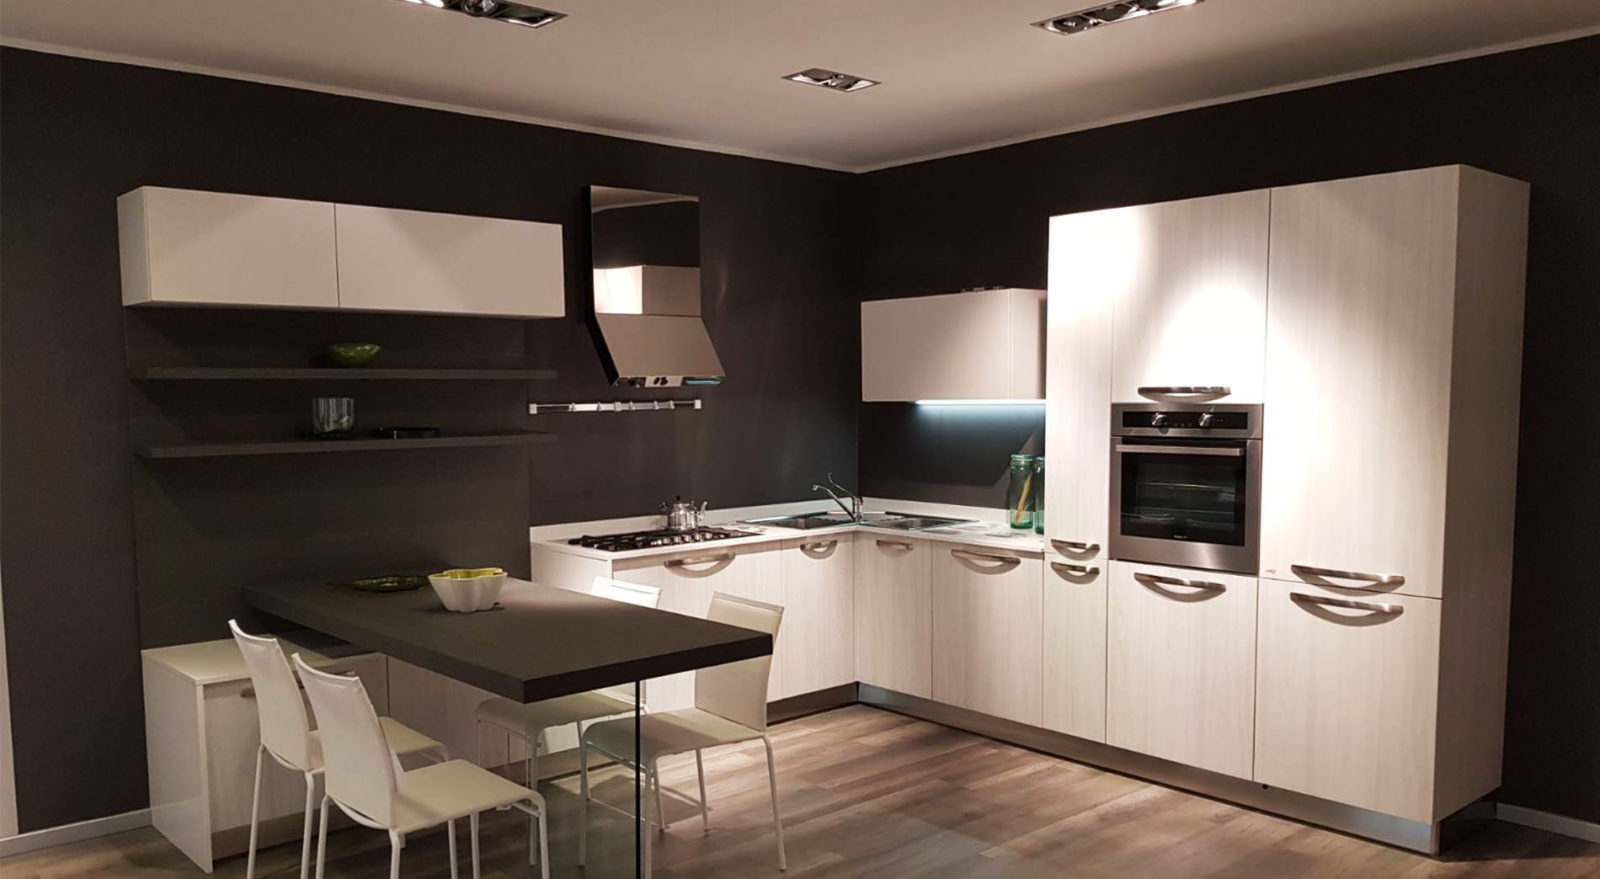 Outlet cucine bari free beautiful cucine usate bari for Cucine outlet verona